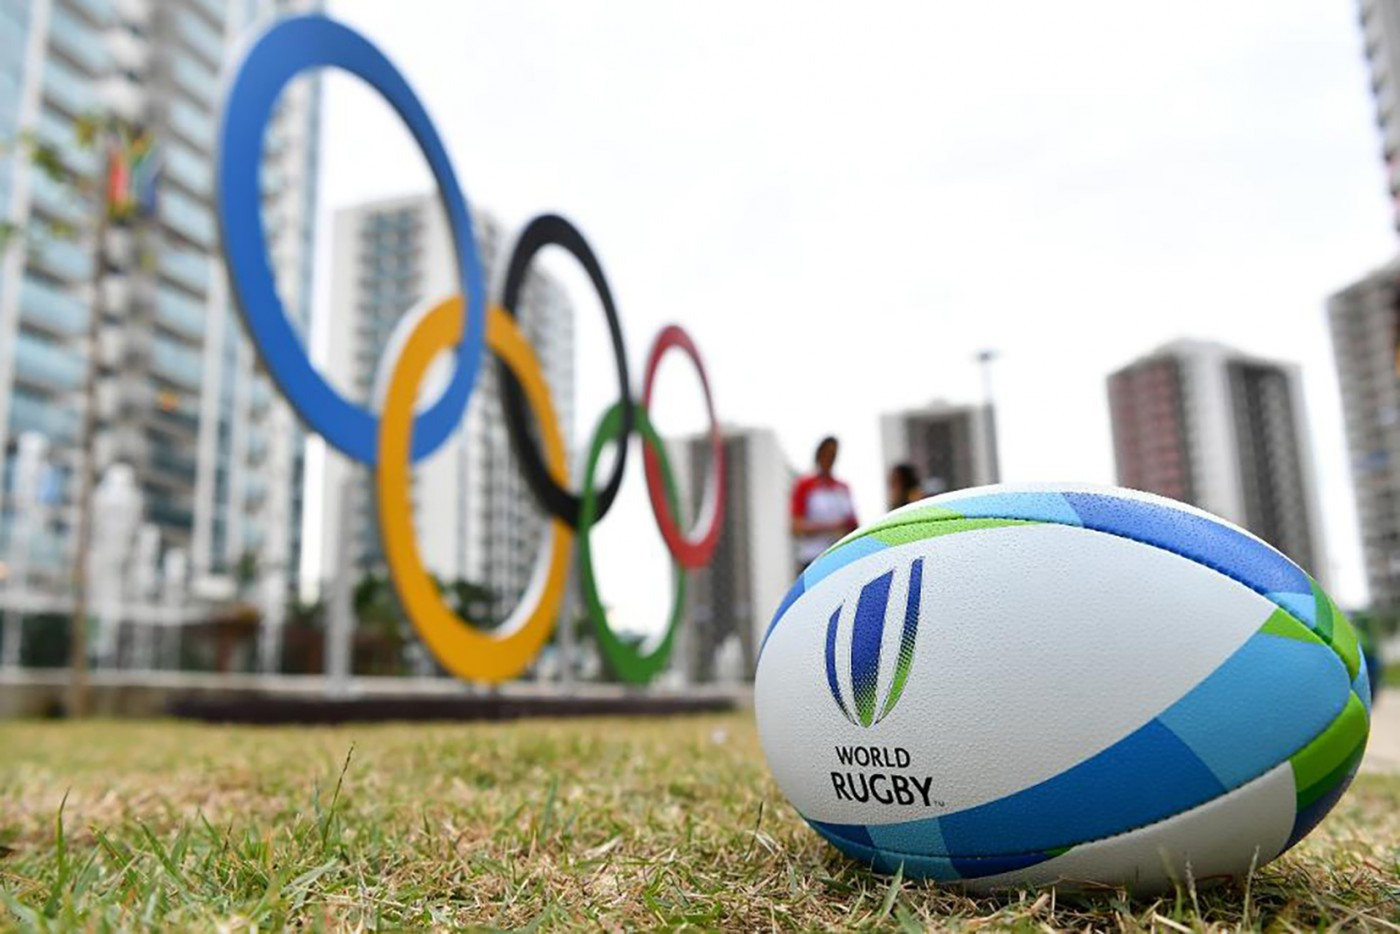 World Rugby appoints Strive Sponsorship for gaming and esports strategic review